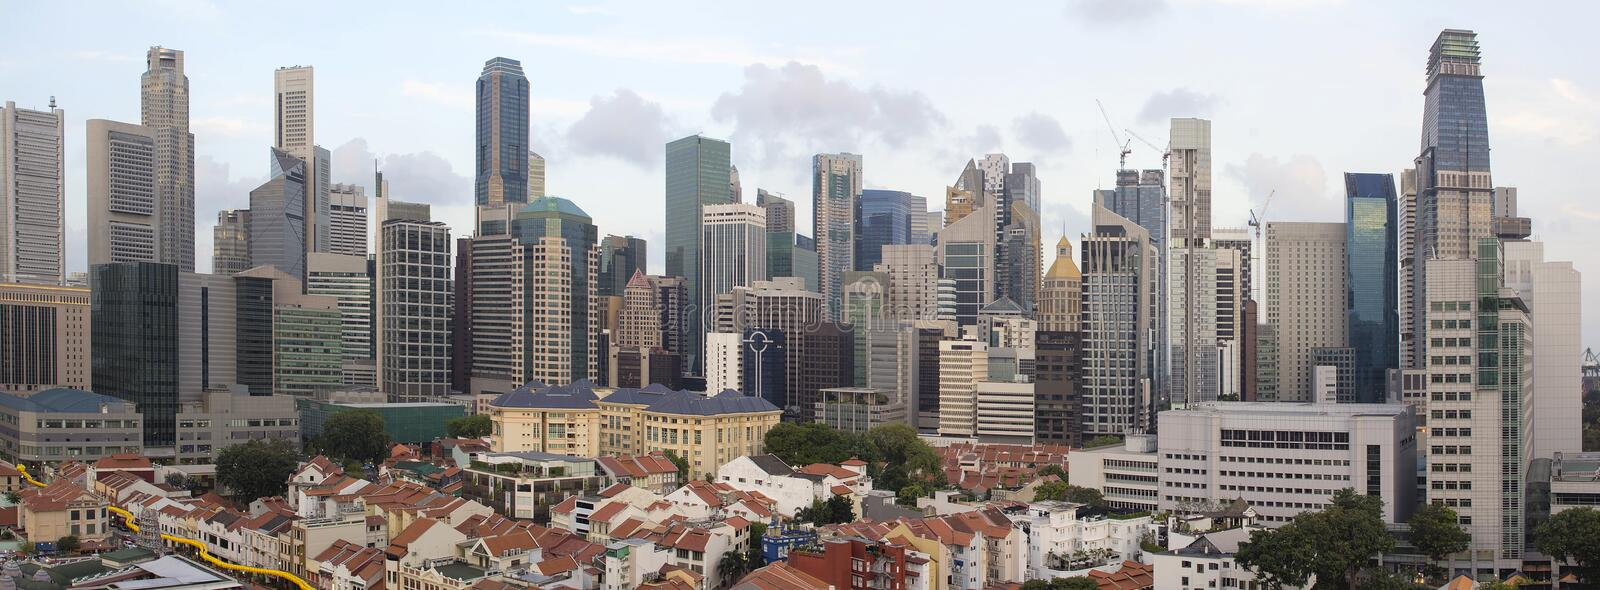 Download Singapore Skyline Along Chinatown Area Stock Images - Image: 29981444